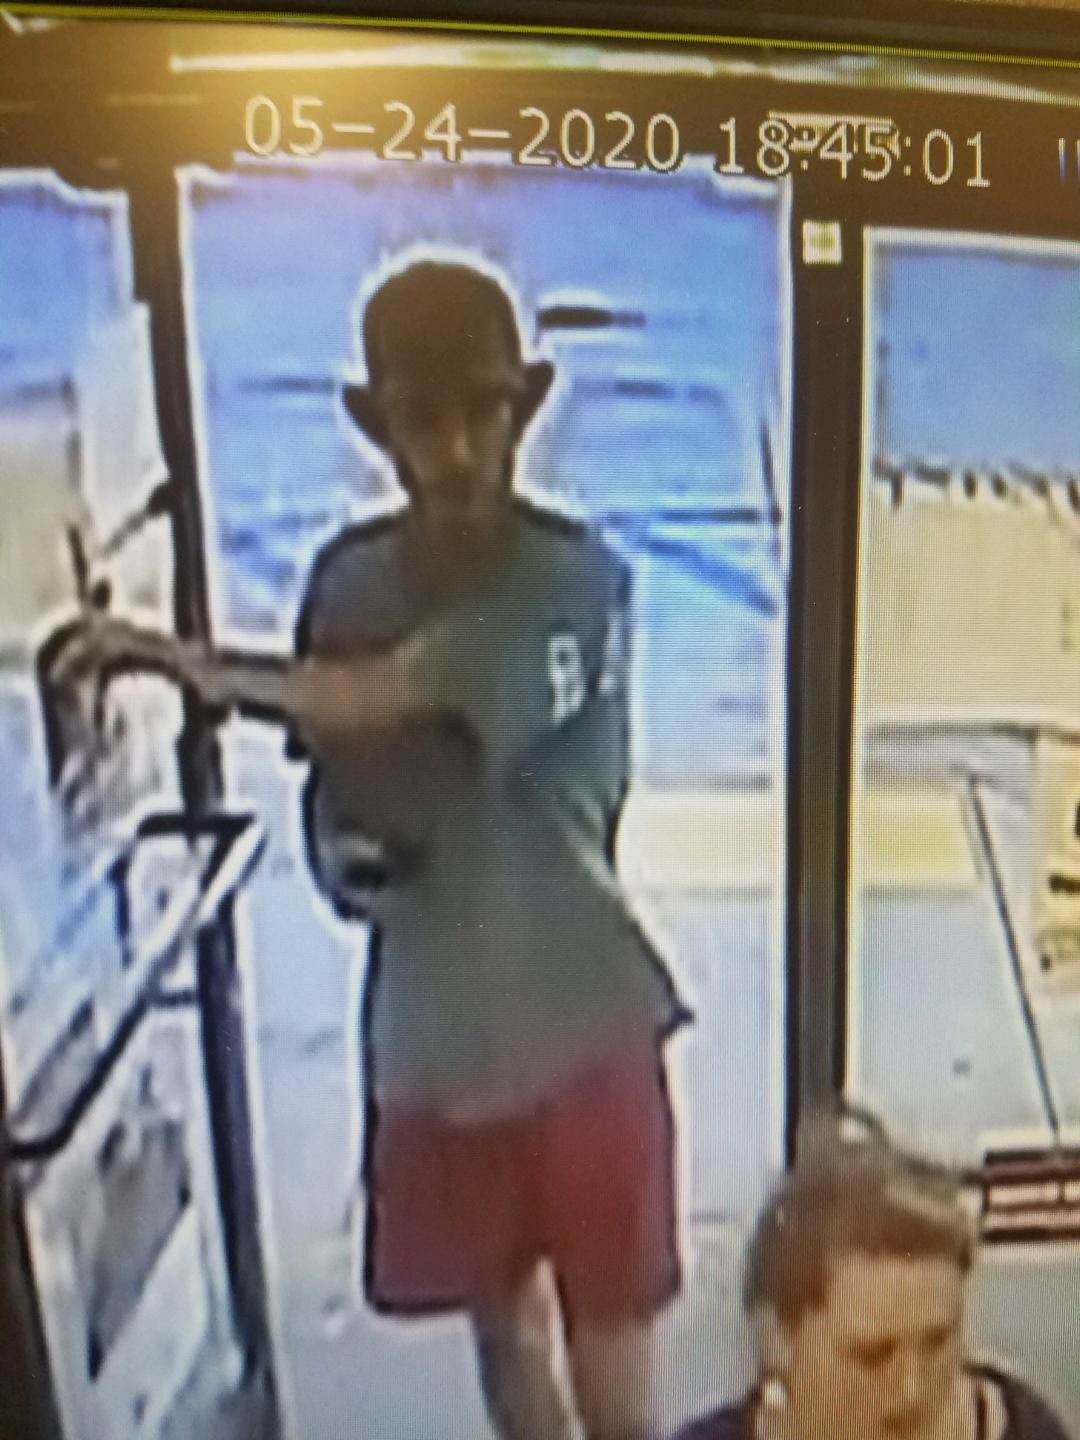 ABPD seeks information on suspect who fired shot outside gas station